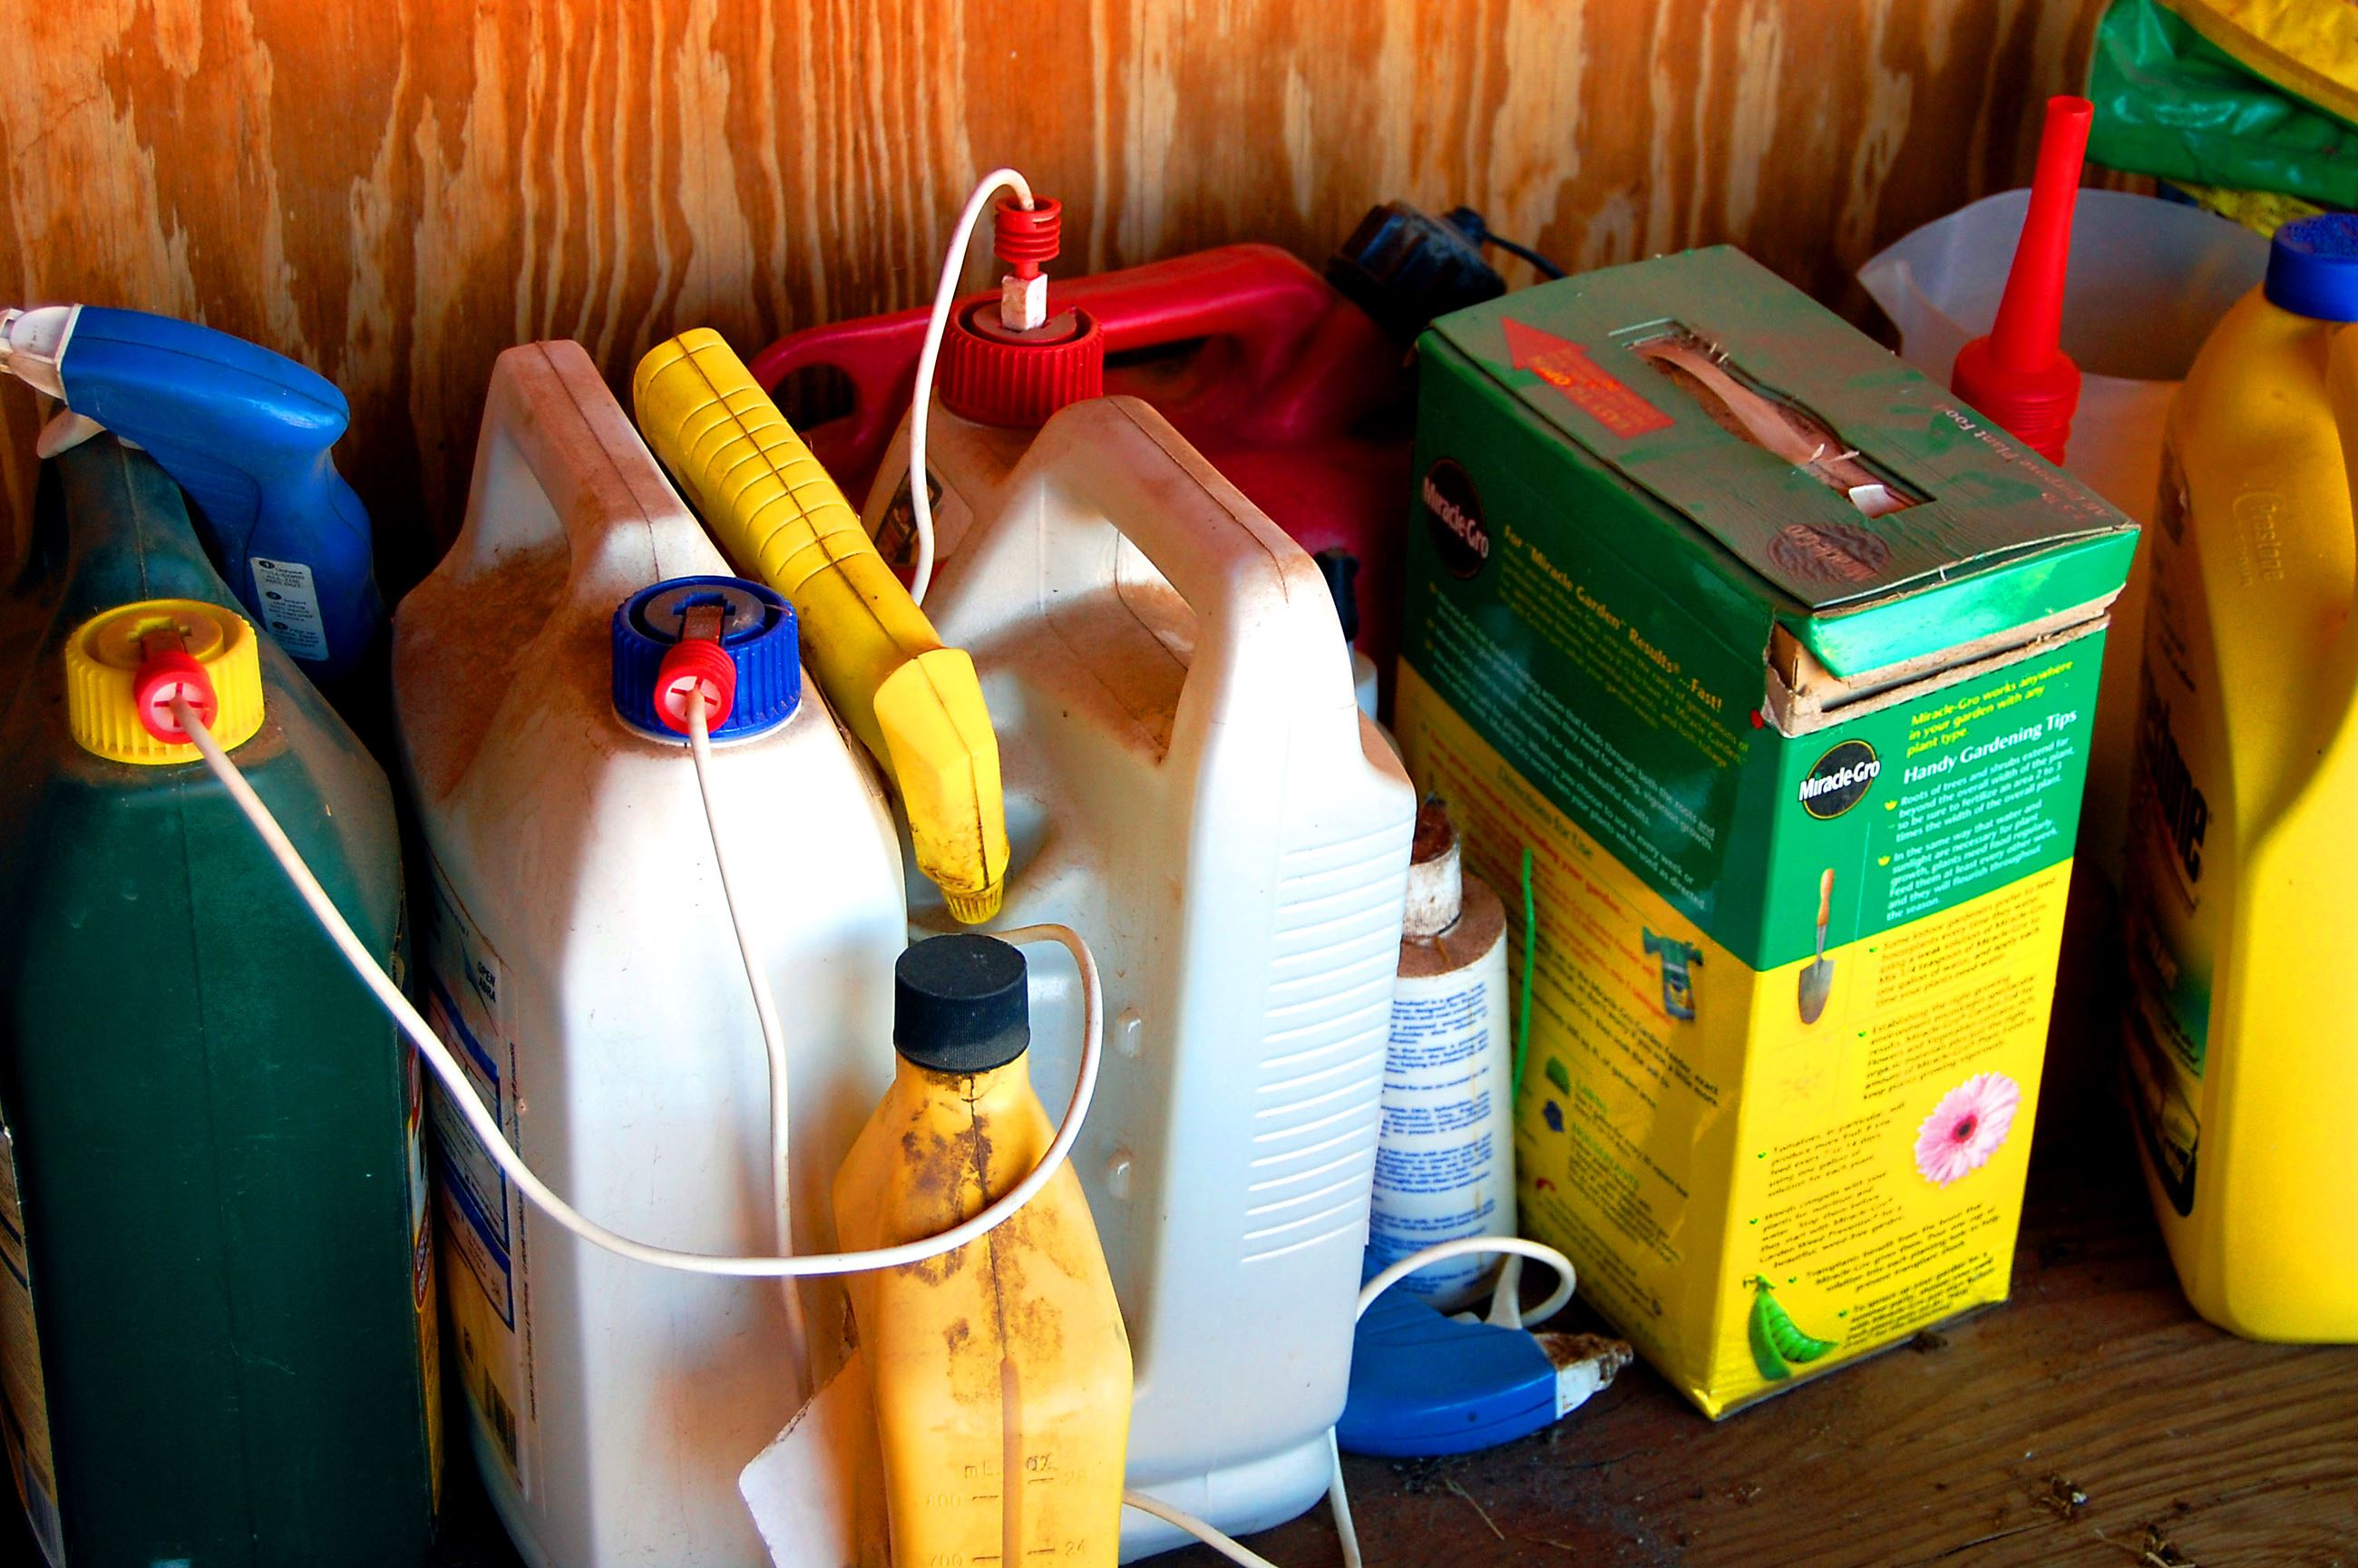 shelve of various chemicals and pesticides